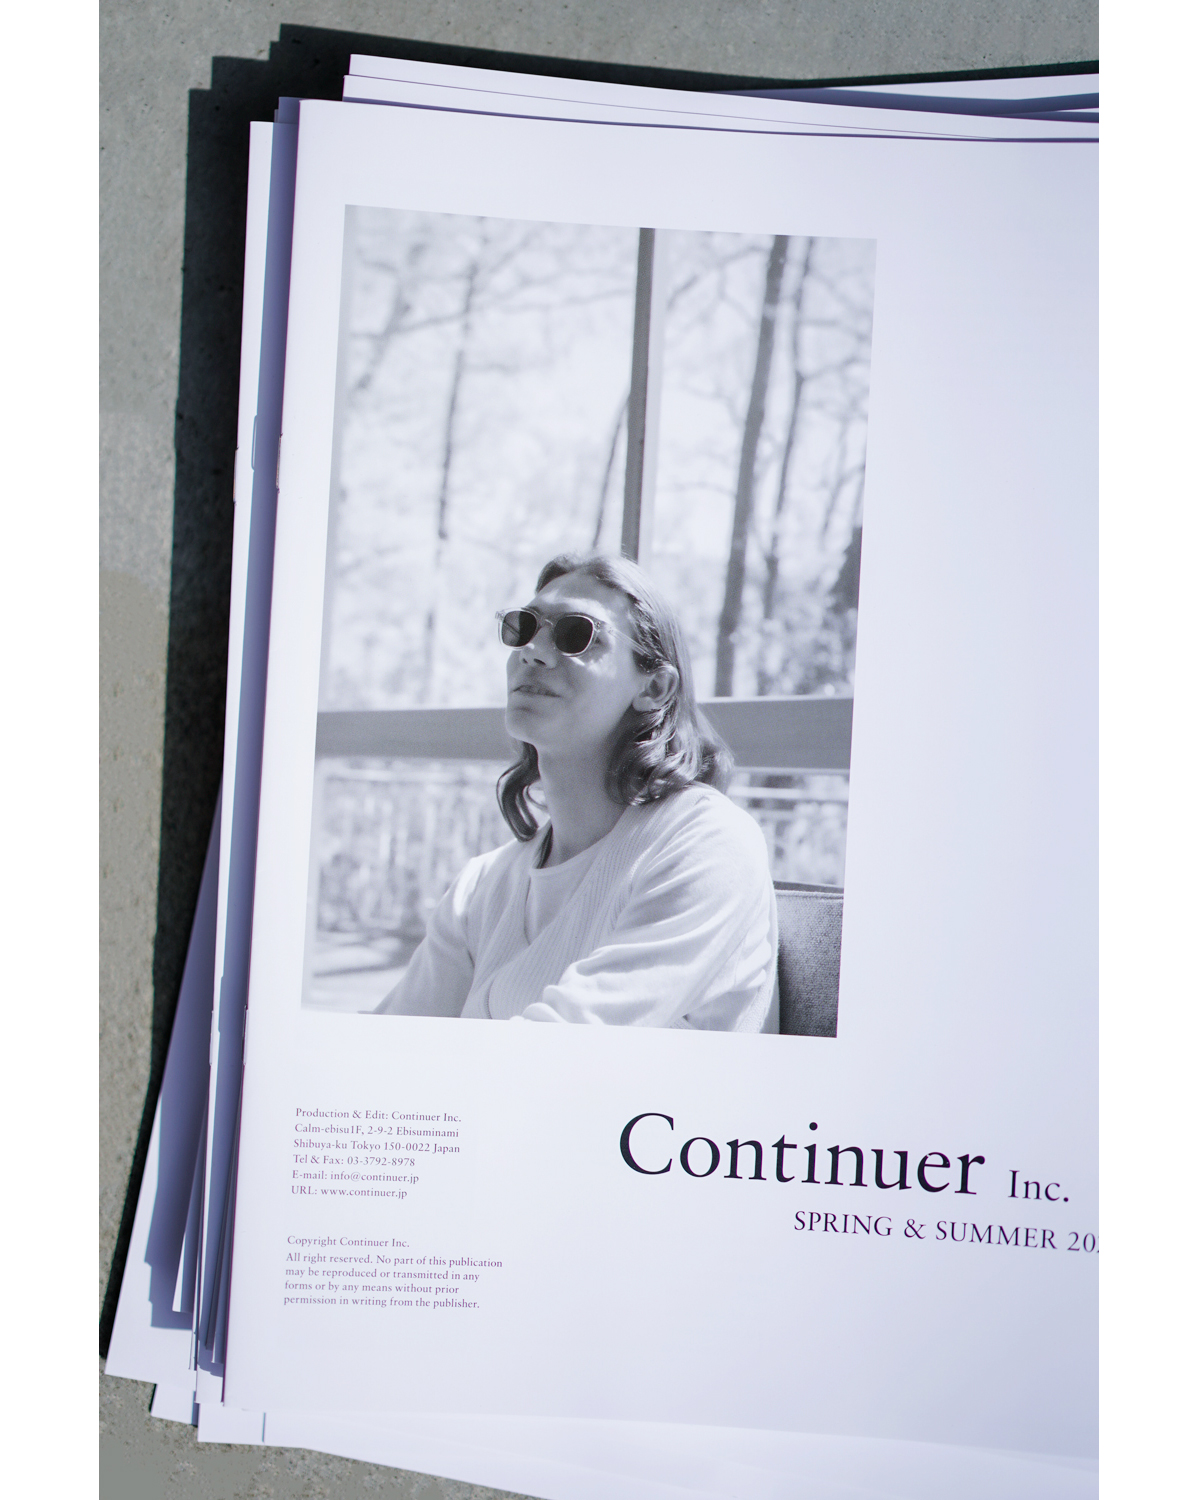 SPRING & SUUMER 2021 CATALOG by Continuer Inc.